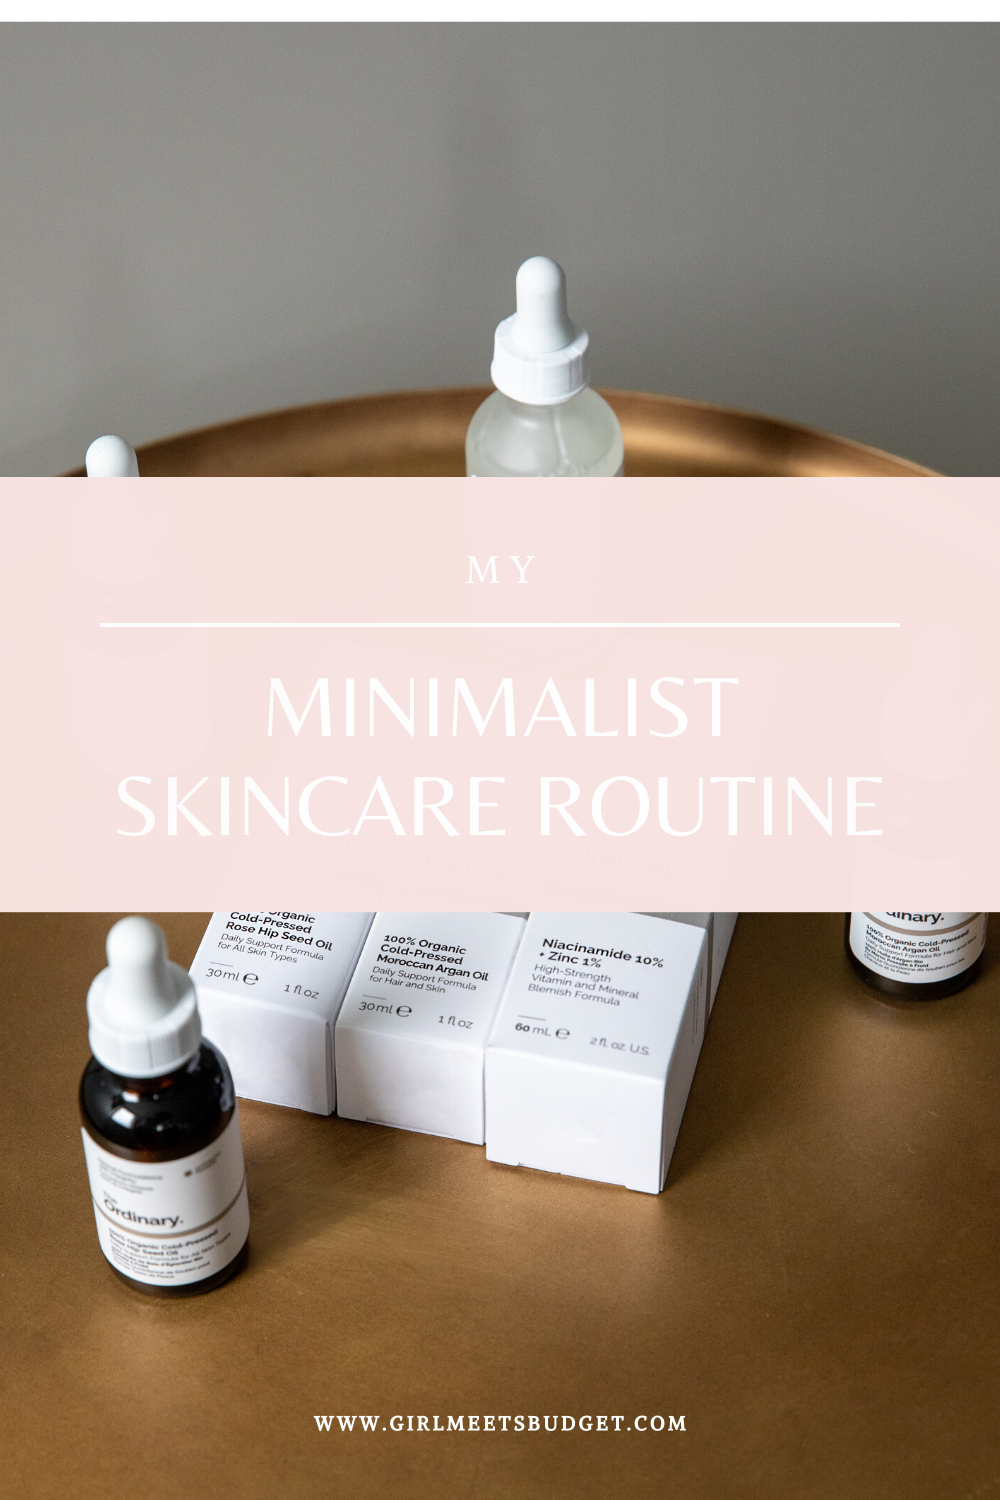 How To Simplify And Create A Minimalist Skincare Routine With Effective And Budget Friendly Products In 2020 Minimalist Skincare Skin Care Routine Skin Care